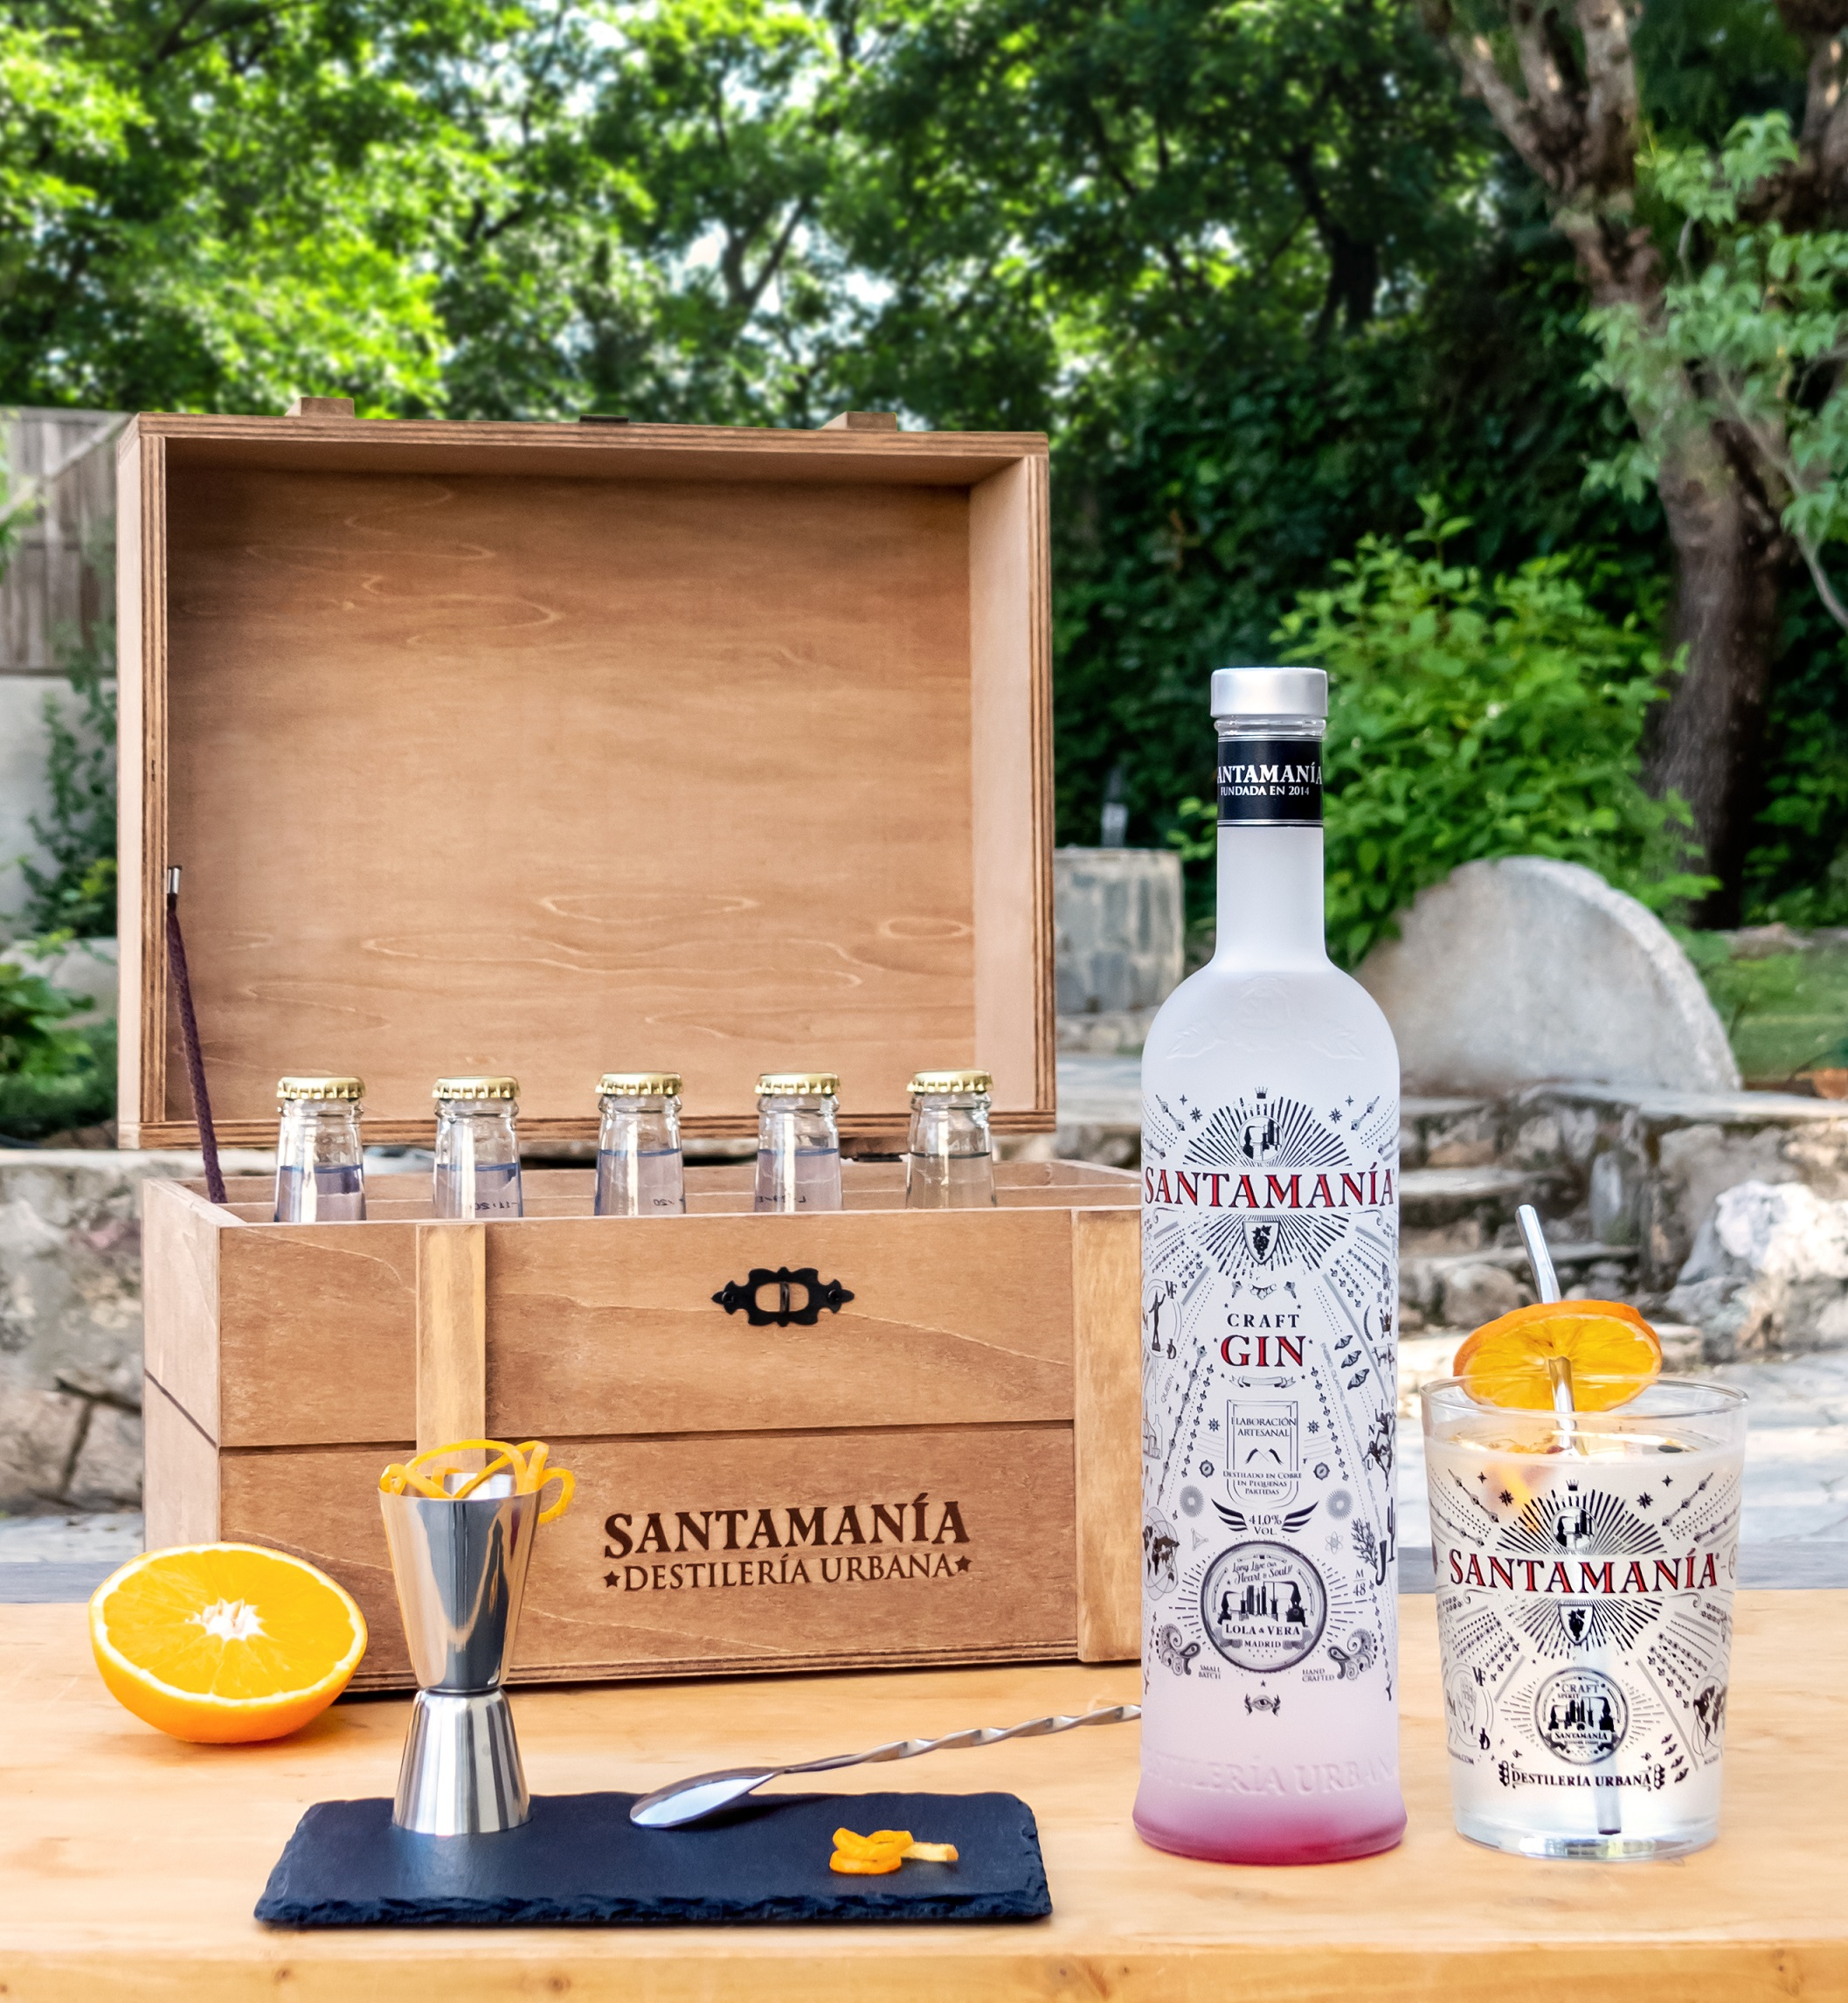 Meet the Distiller Cocktail Masterclass with Santamanía